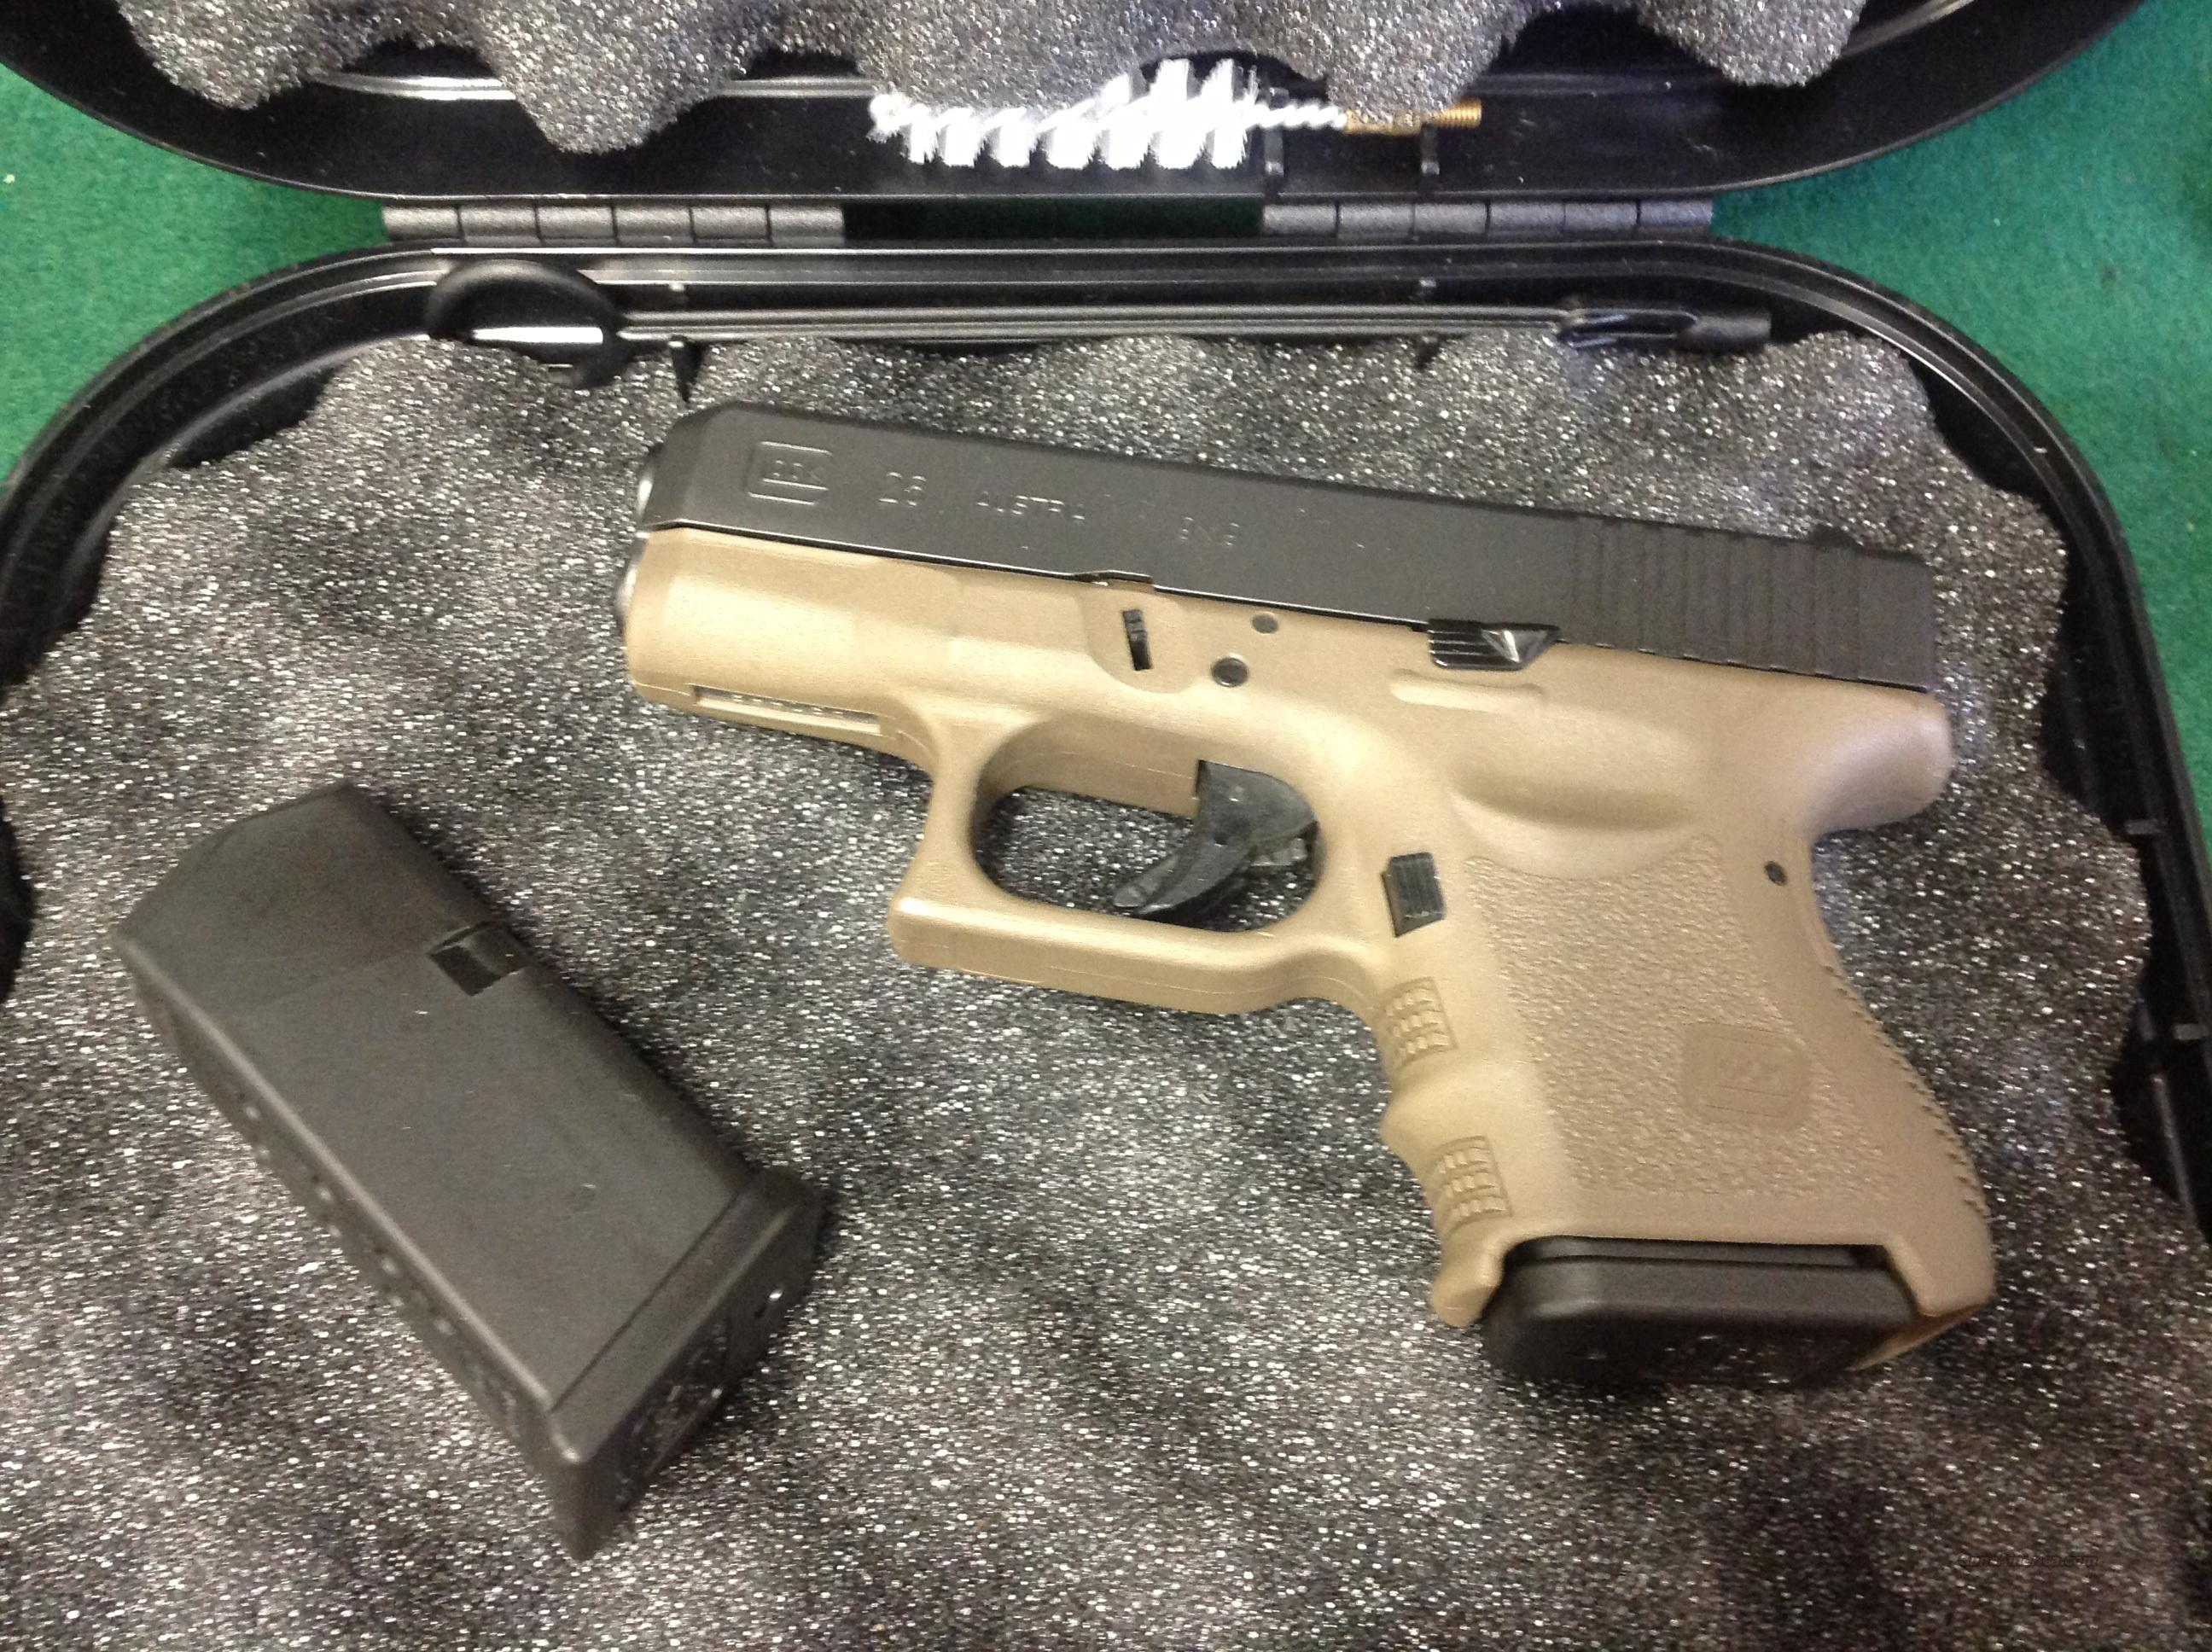 Glock 26 OD Green **As New In Box**  Guns > Pistols > Glock Pistols > 26/27